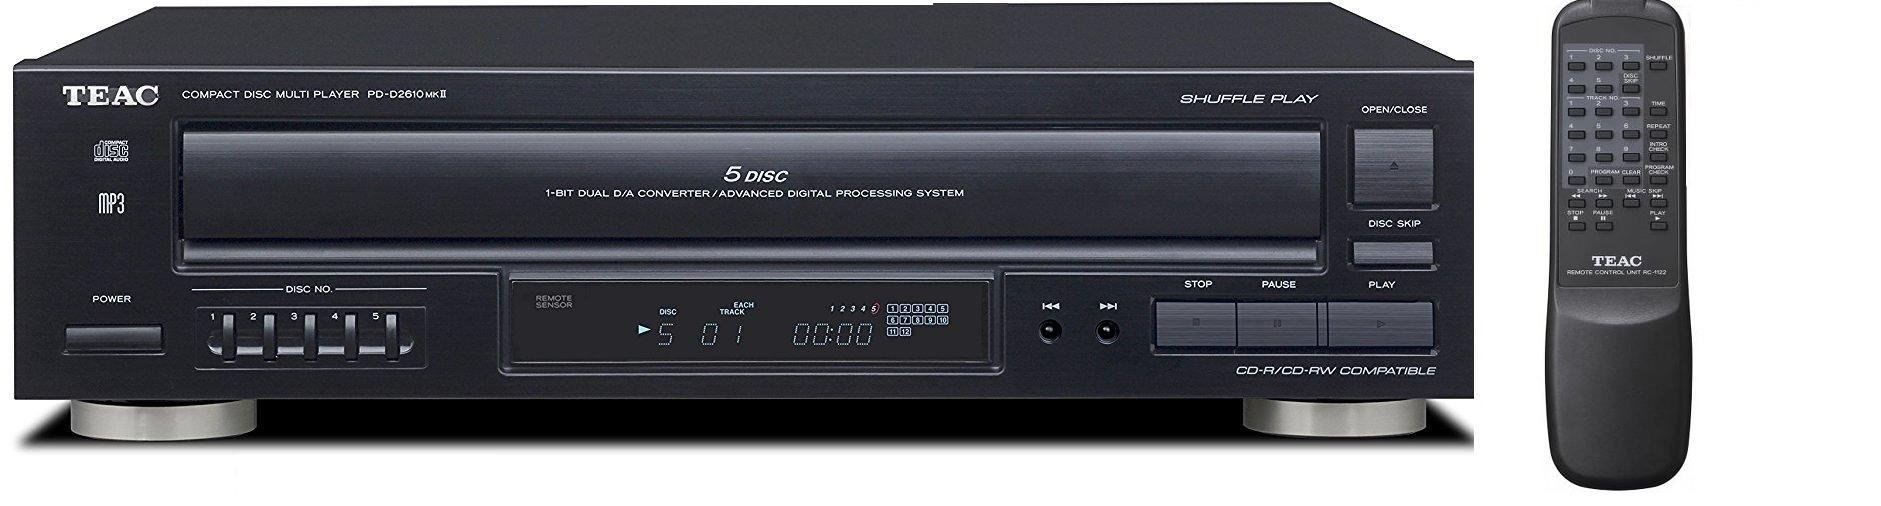 Teac PD-D2610MKII 5-Disc Carousel CD Player Changer Remote CD,CD-R/RW, MP3 Disks (Renewed) by Teac